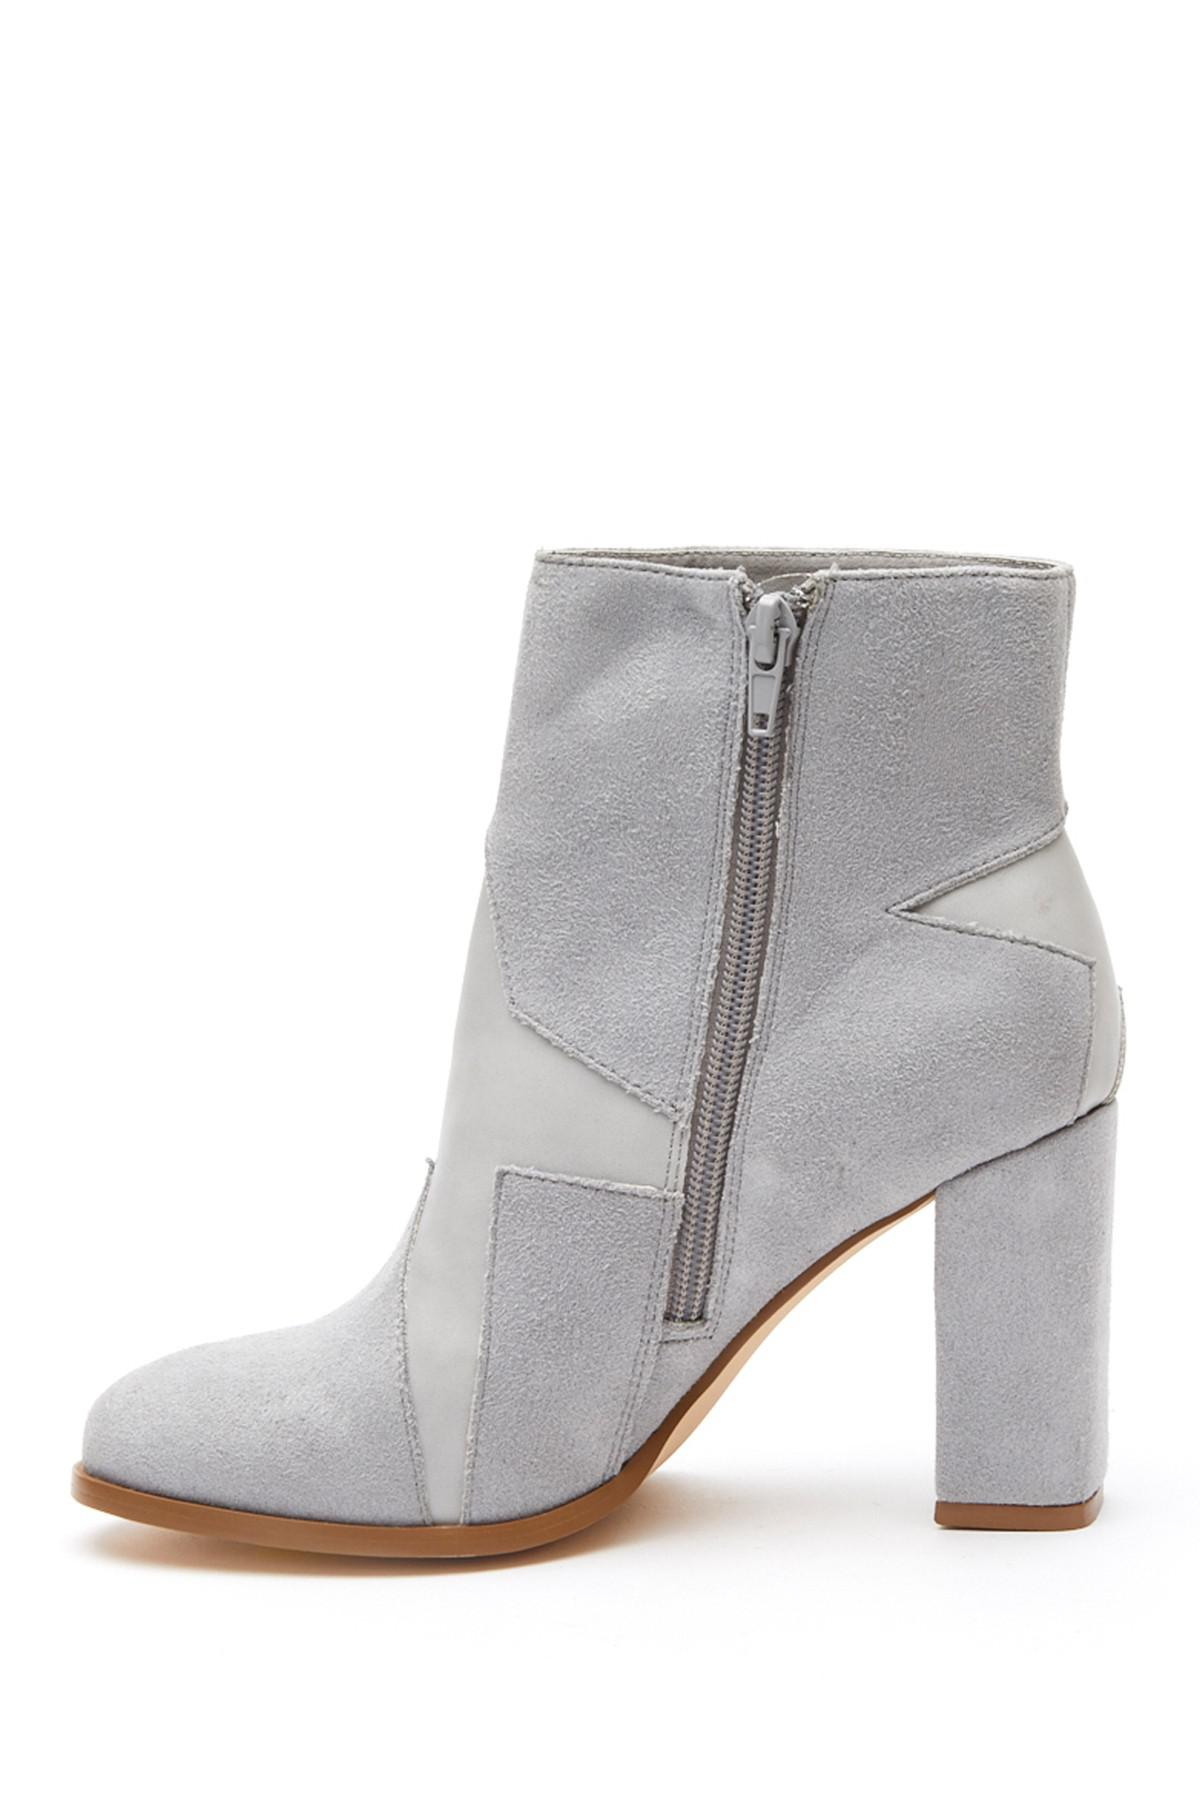 Bootie Matisse Bootie Suede Matisse Faux Faux Jill Faux Jill Matisse Suede Jill 5j43AqcRL